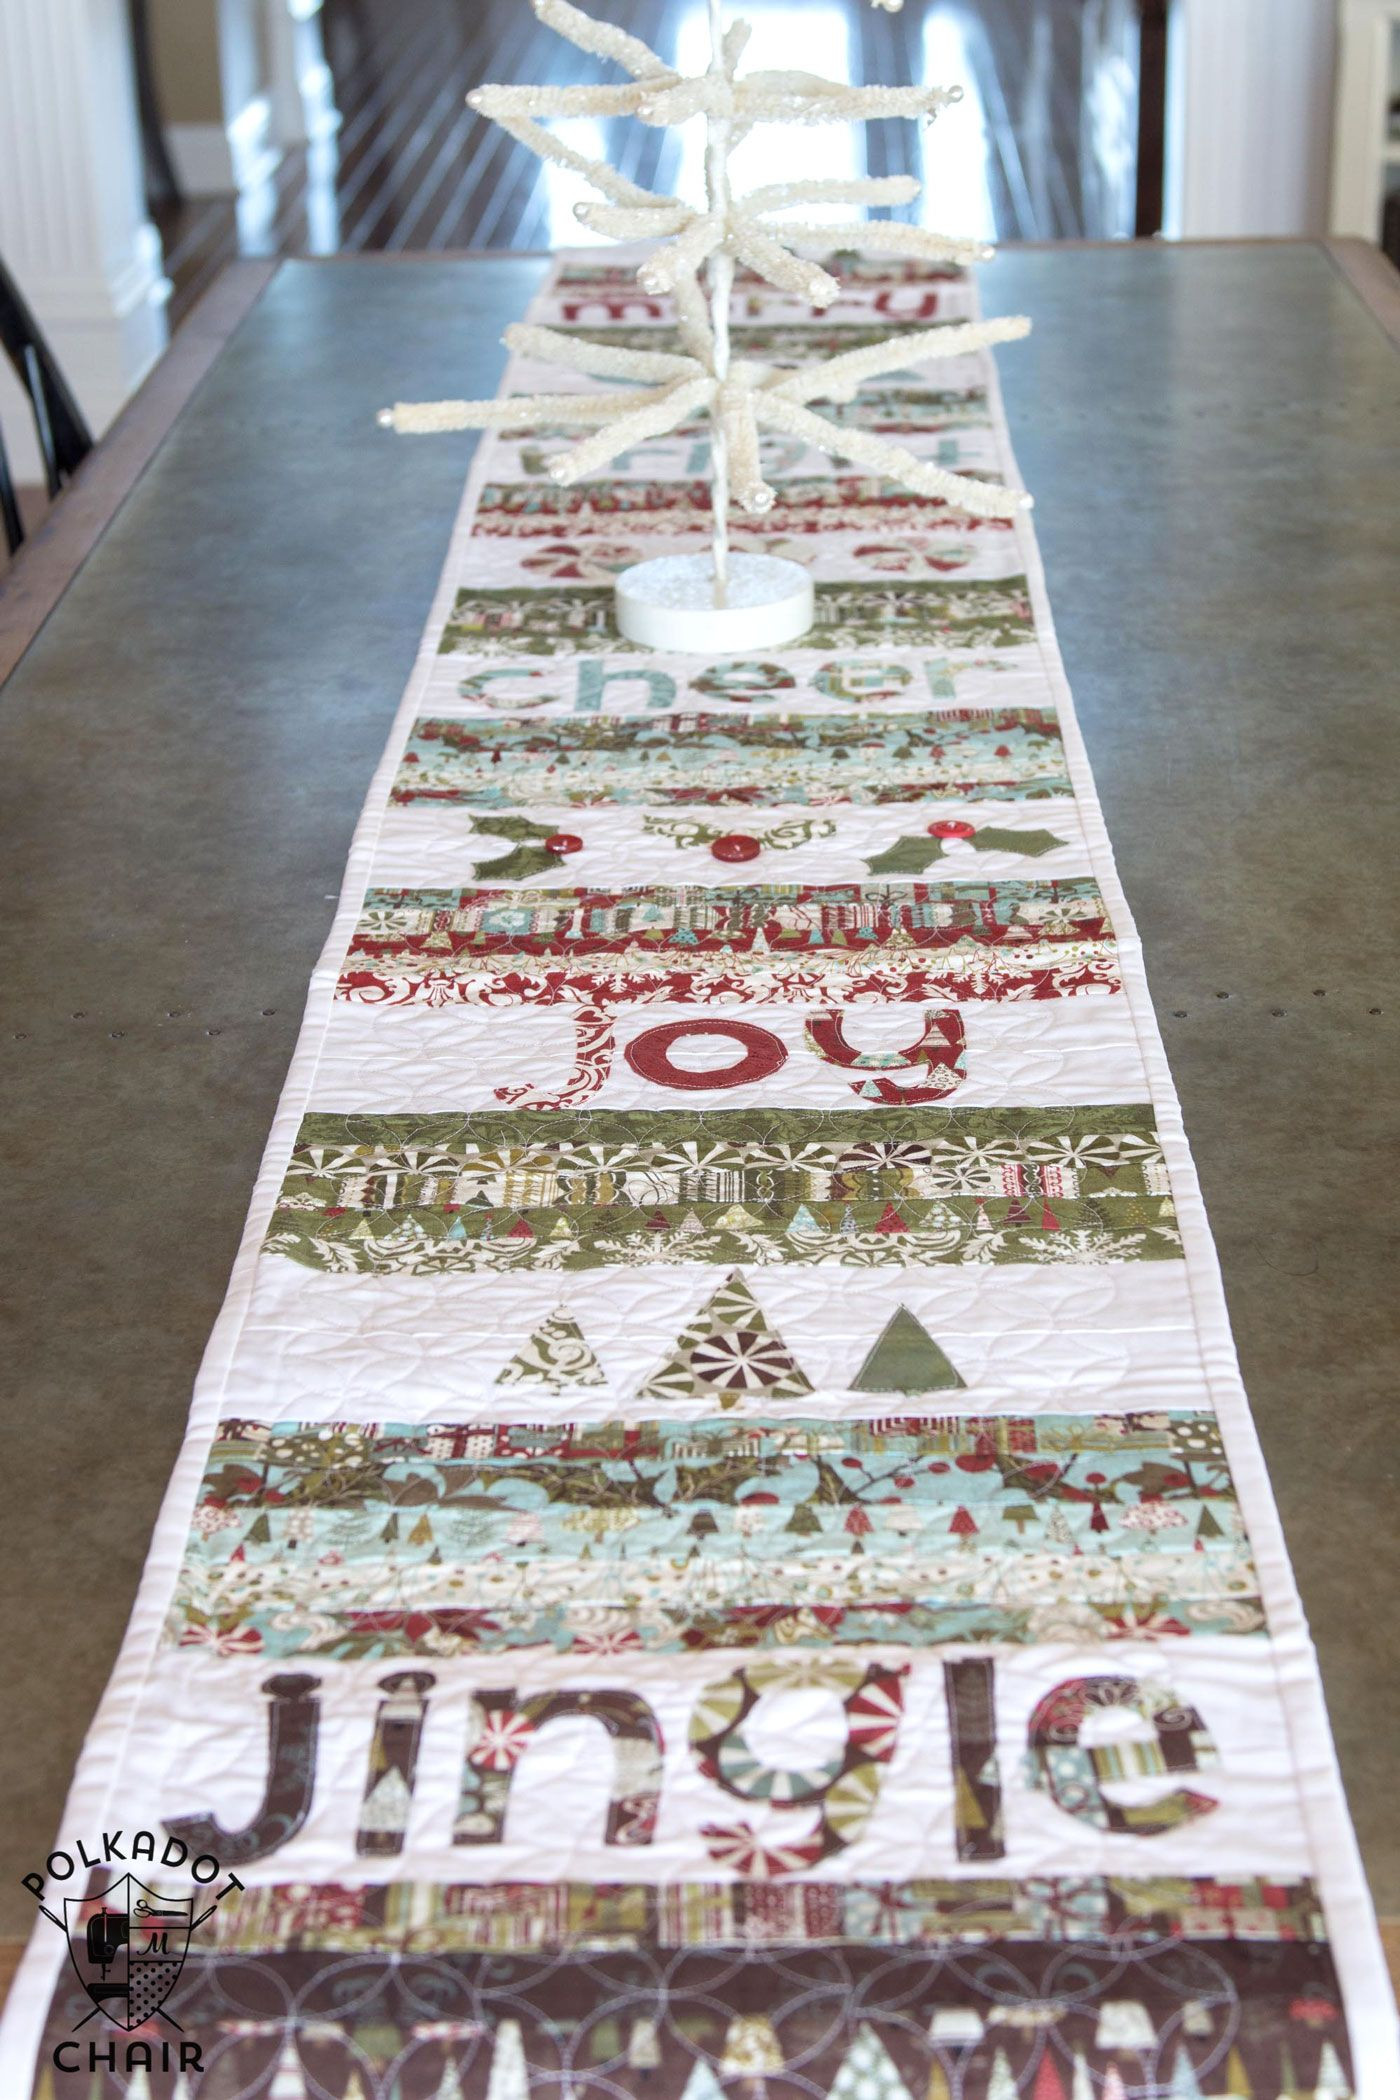 Merry Cheer Quilted Christmas Table Runner Pattern The Polka Dot Chair Christmas Table Runner Pattern Christmas Table Runner Christmas Runner